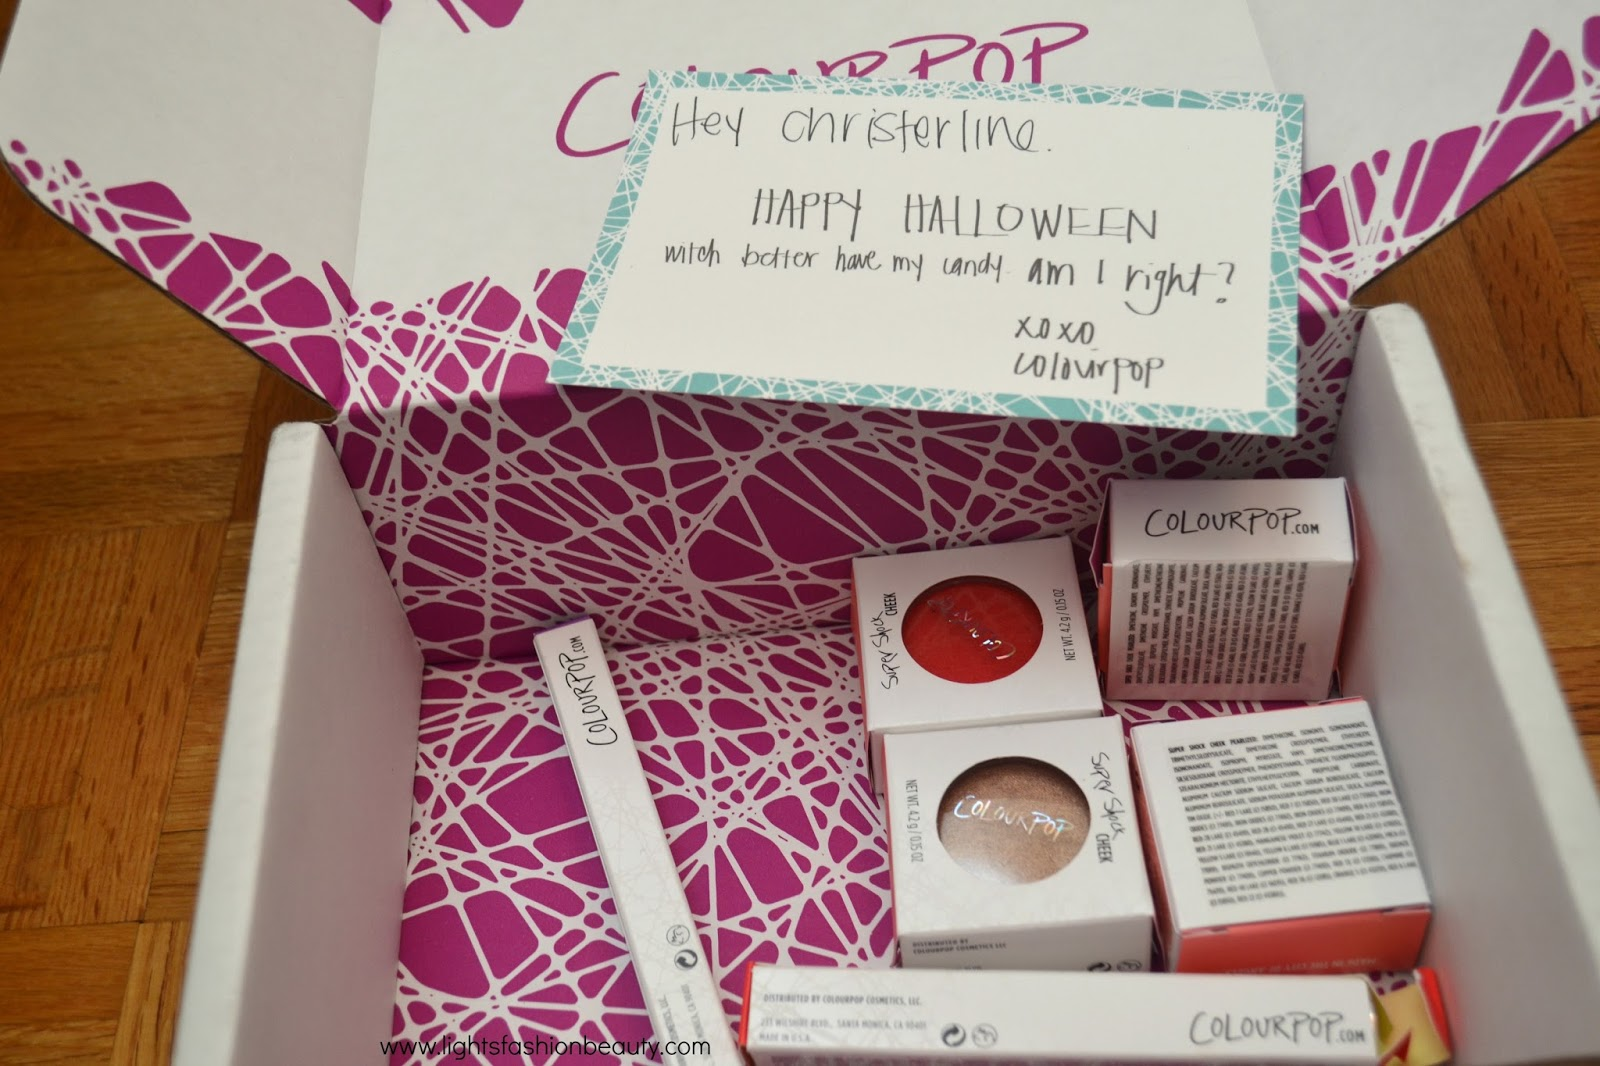 colourpop haul, colourpop ultra matte lip, colourpop swatches on dark skin, colourpop lippie stix, lightsfashionbeauty, affordable makeup for dark skin, montreal beauty blogger